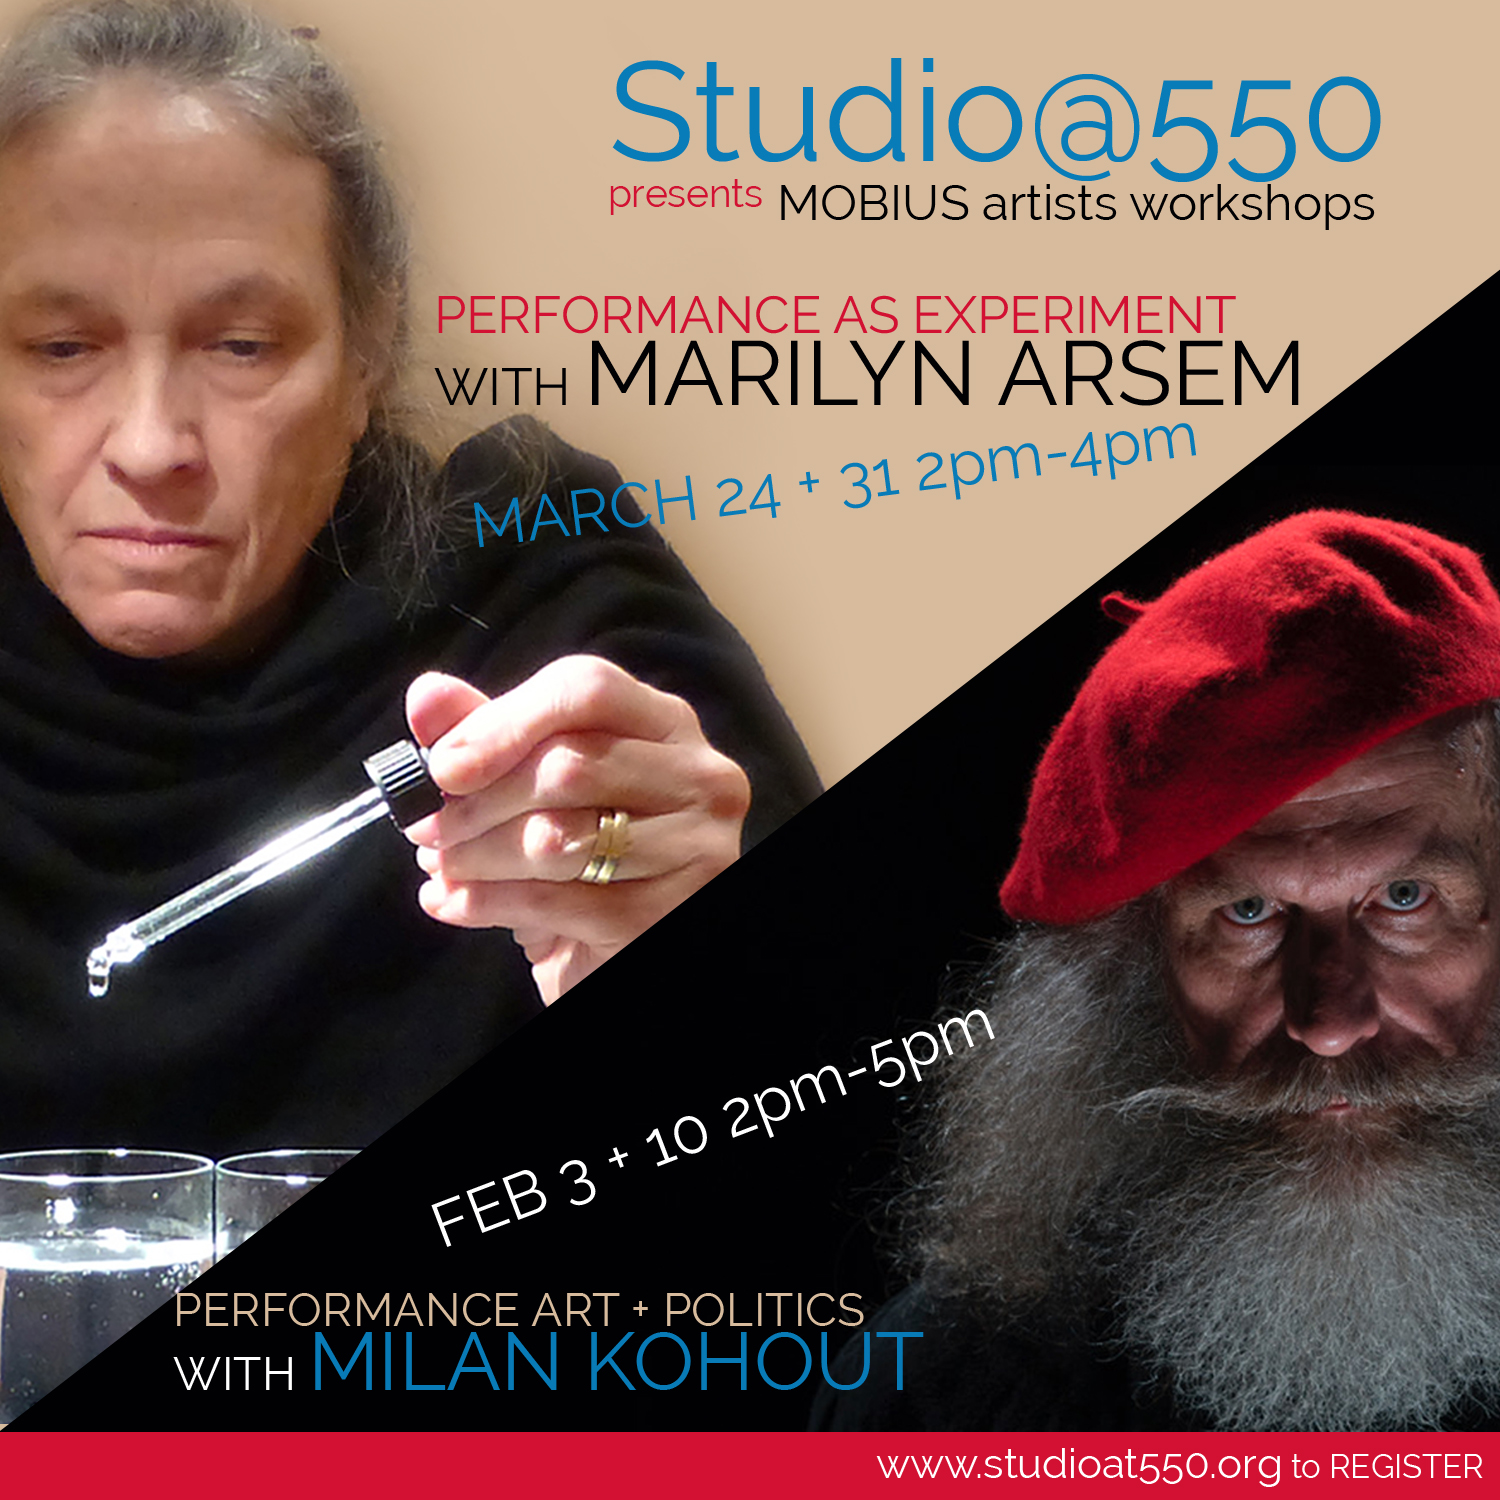 Performance as Experiment with Marilyn Arsem from MOBIUS 3/24+3/31 2019 Participants must attend both dates